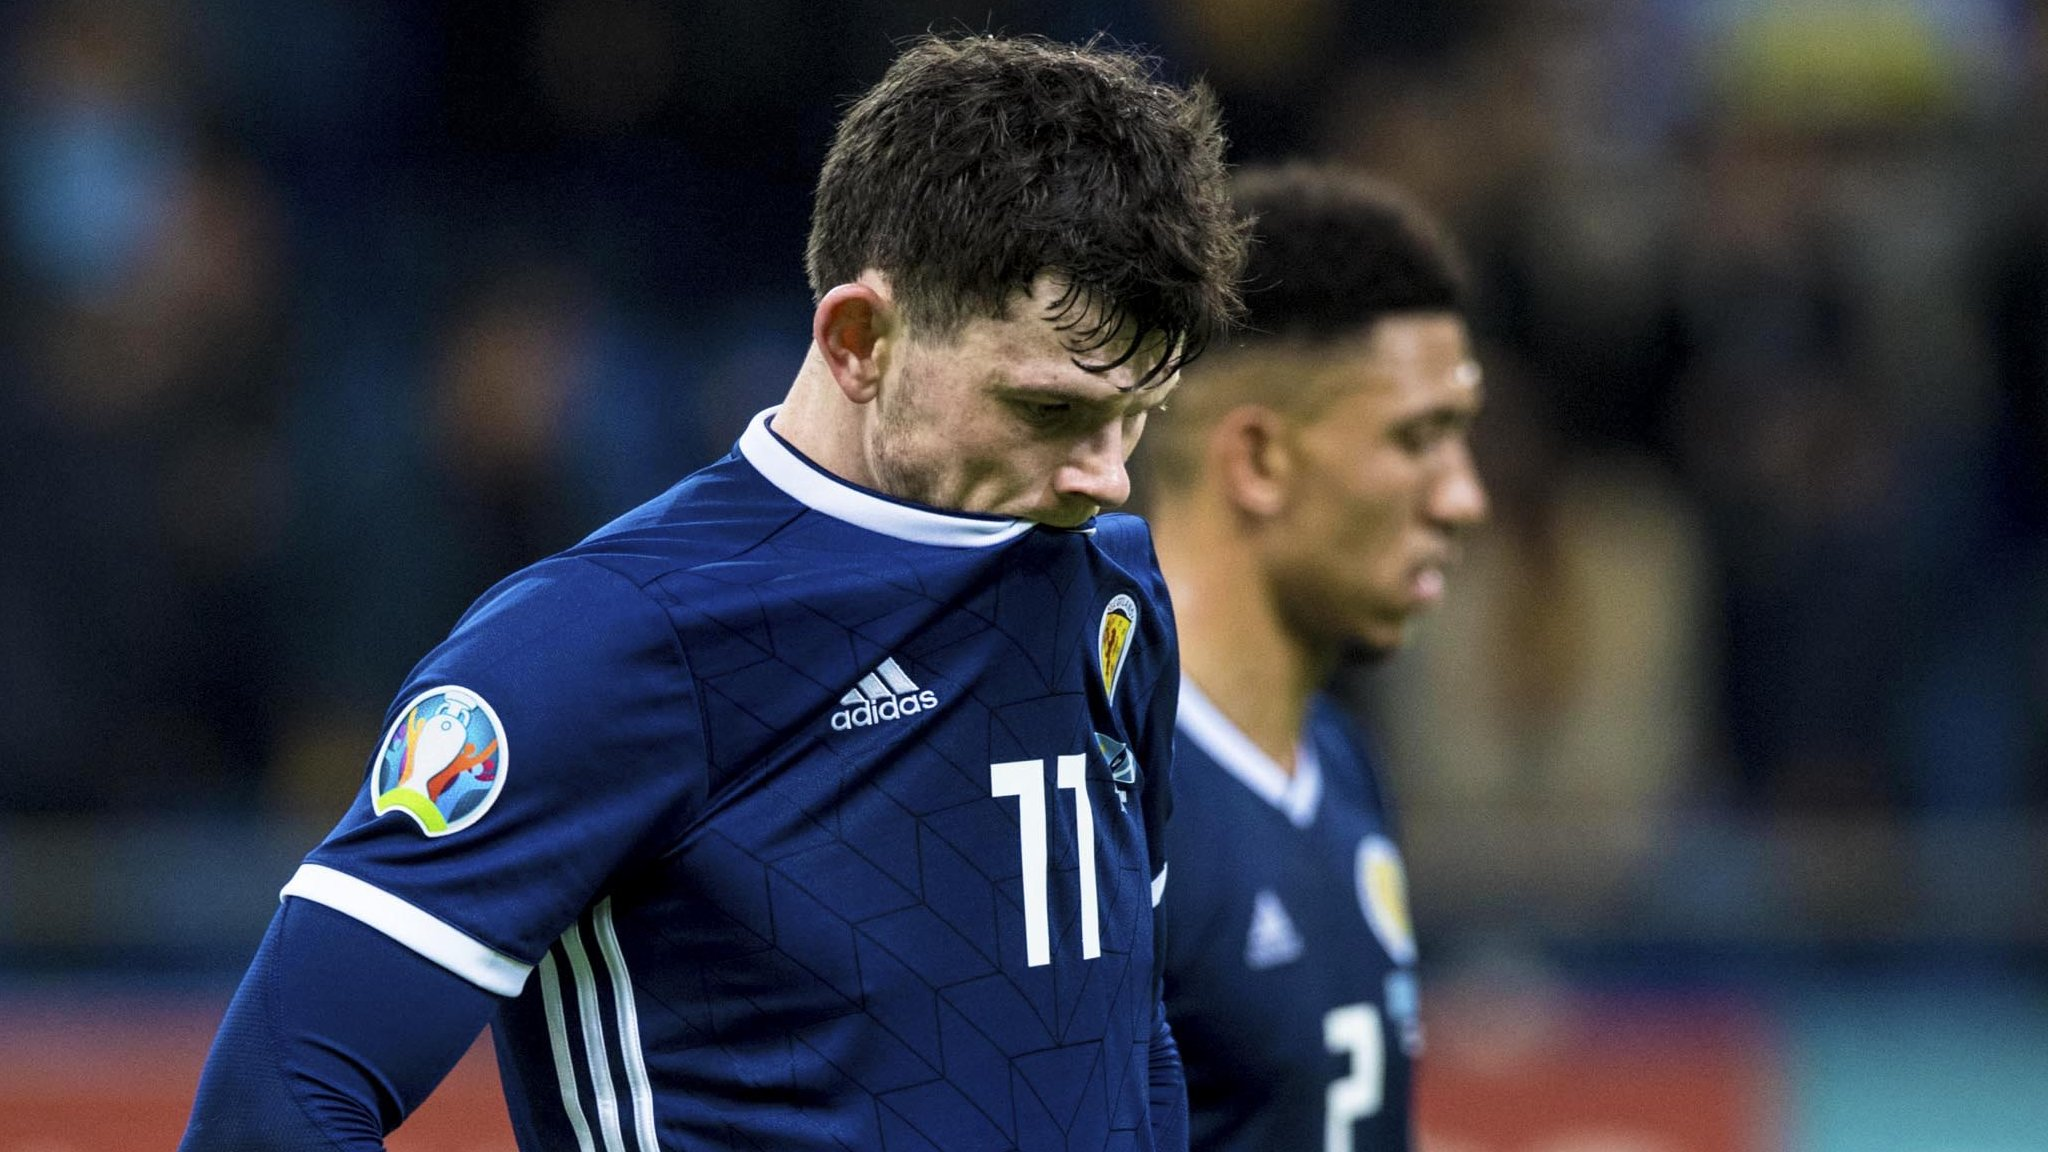 Clarke can lift gloom, says ex-Scotland boss Brown